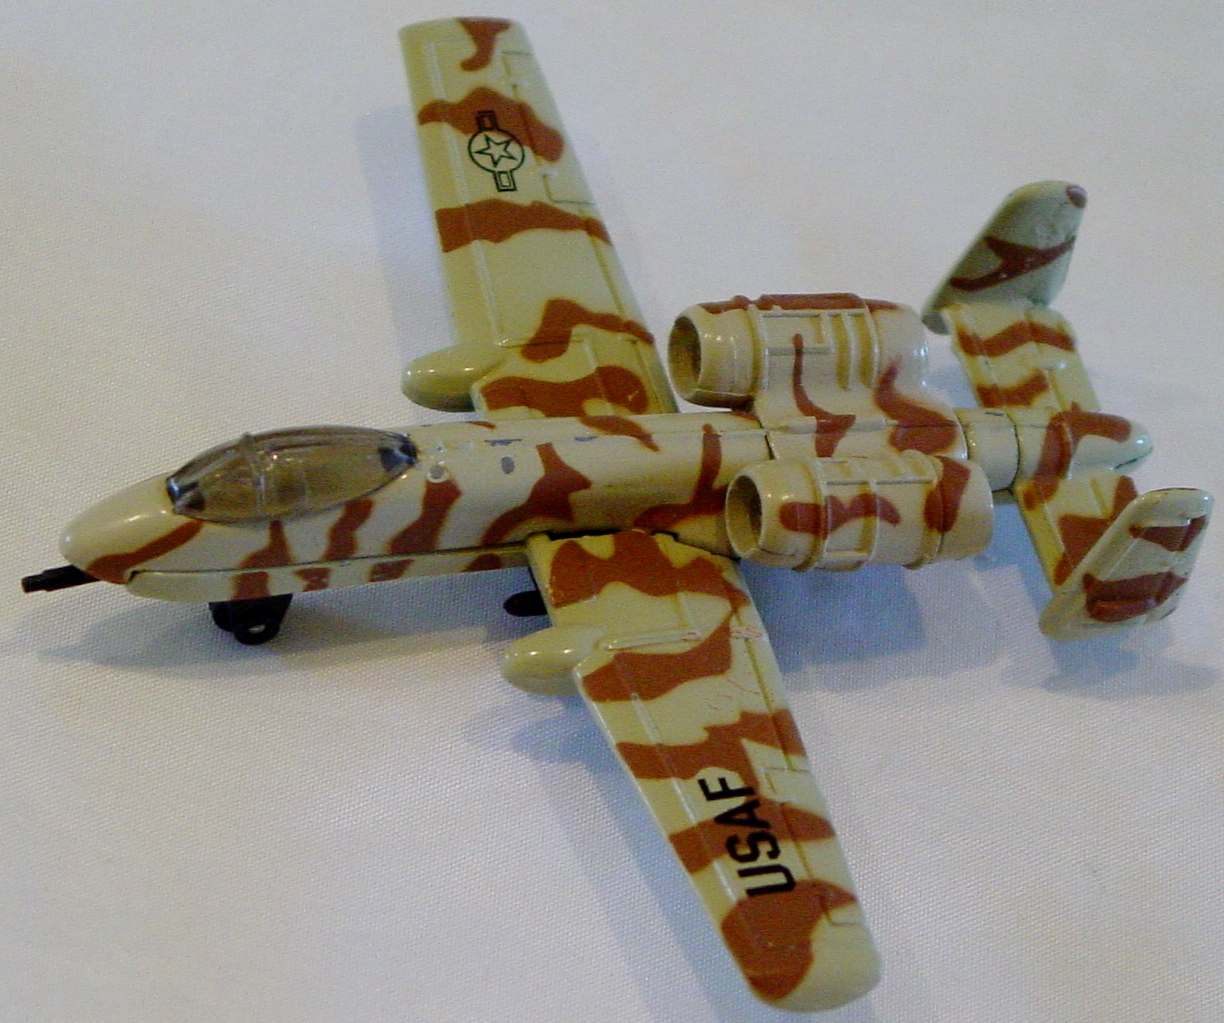 Sky Buster 32 A 3 - A-10 Thunderbolt tan/brown USAF CHINA